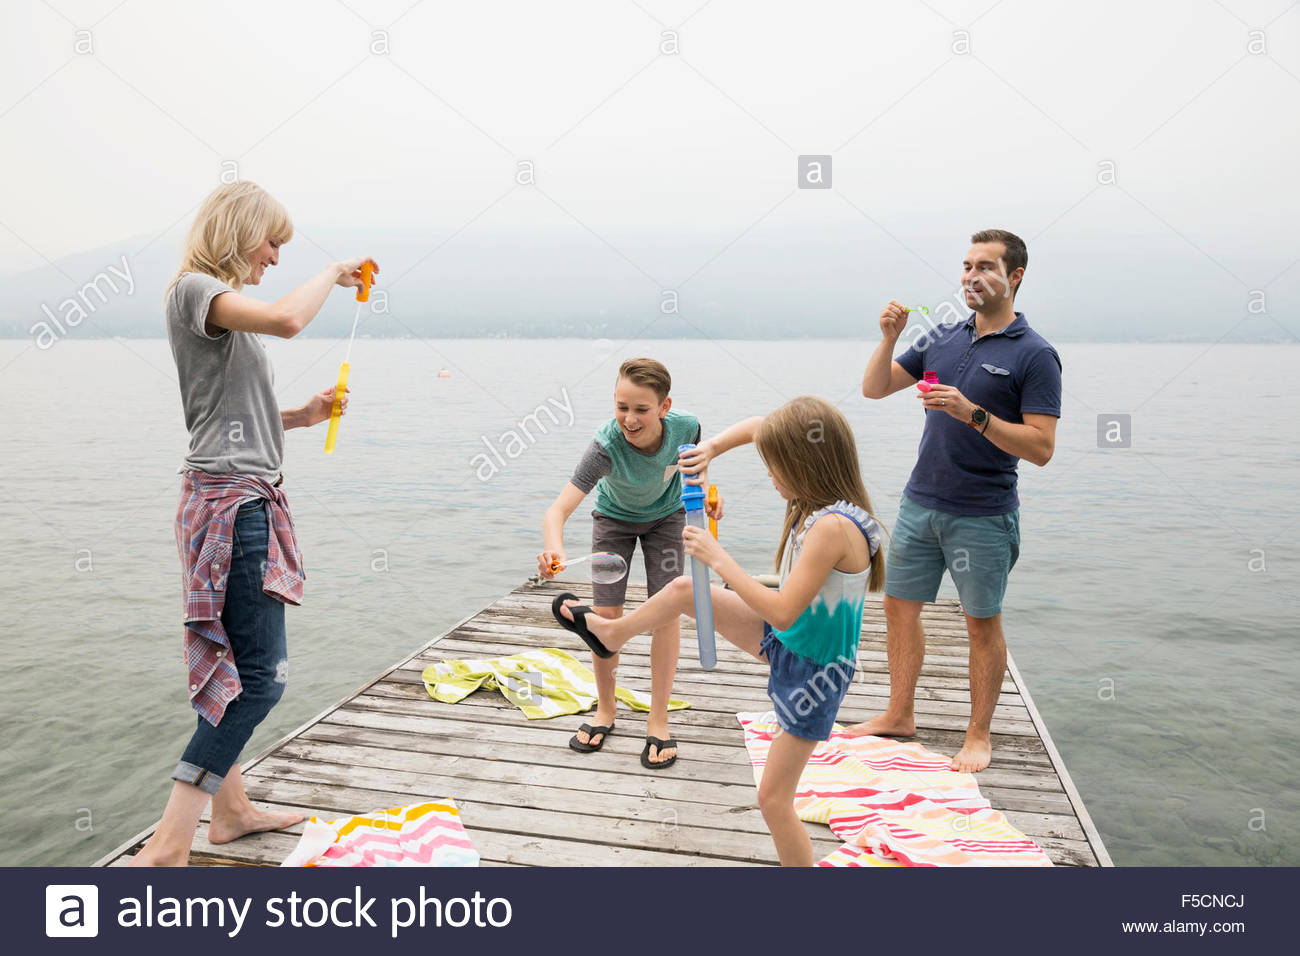 Family playing with bubbles on lake dock Stock Photo